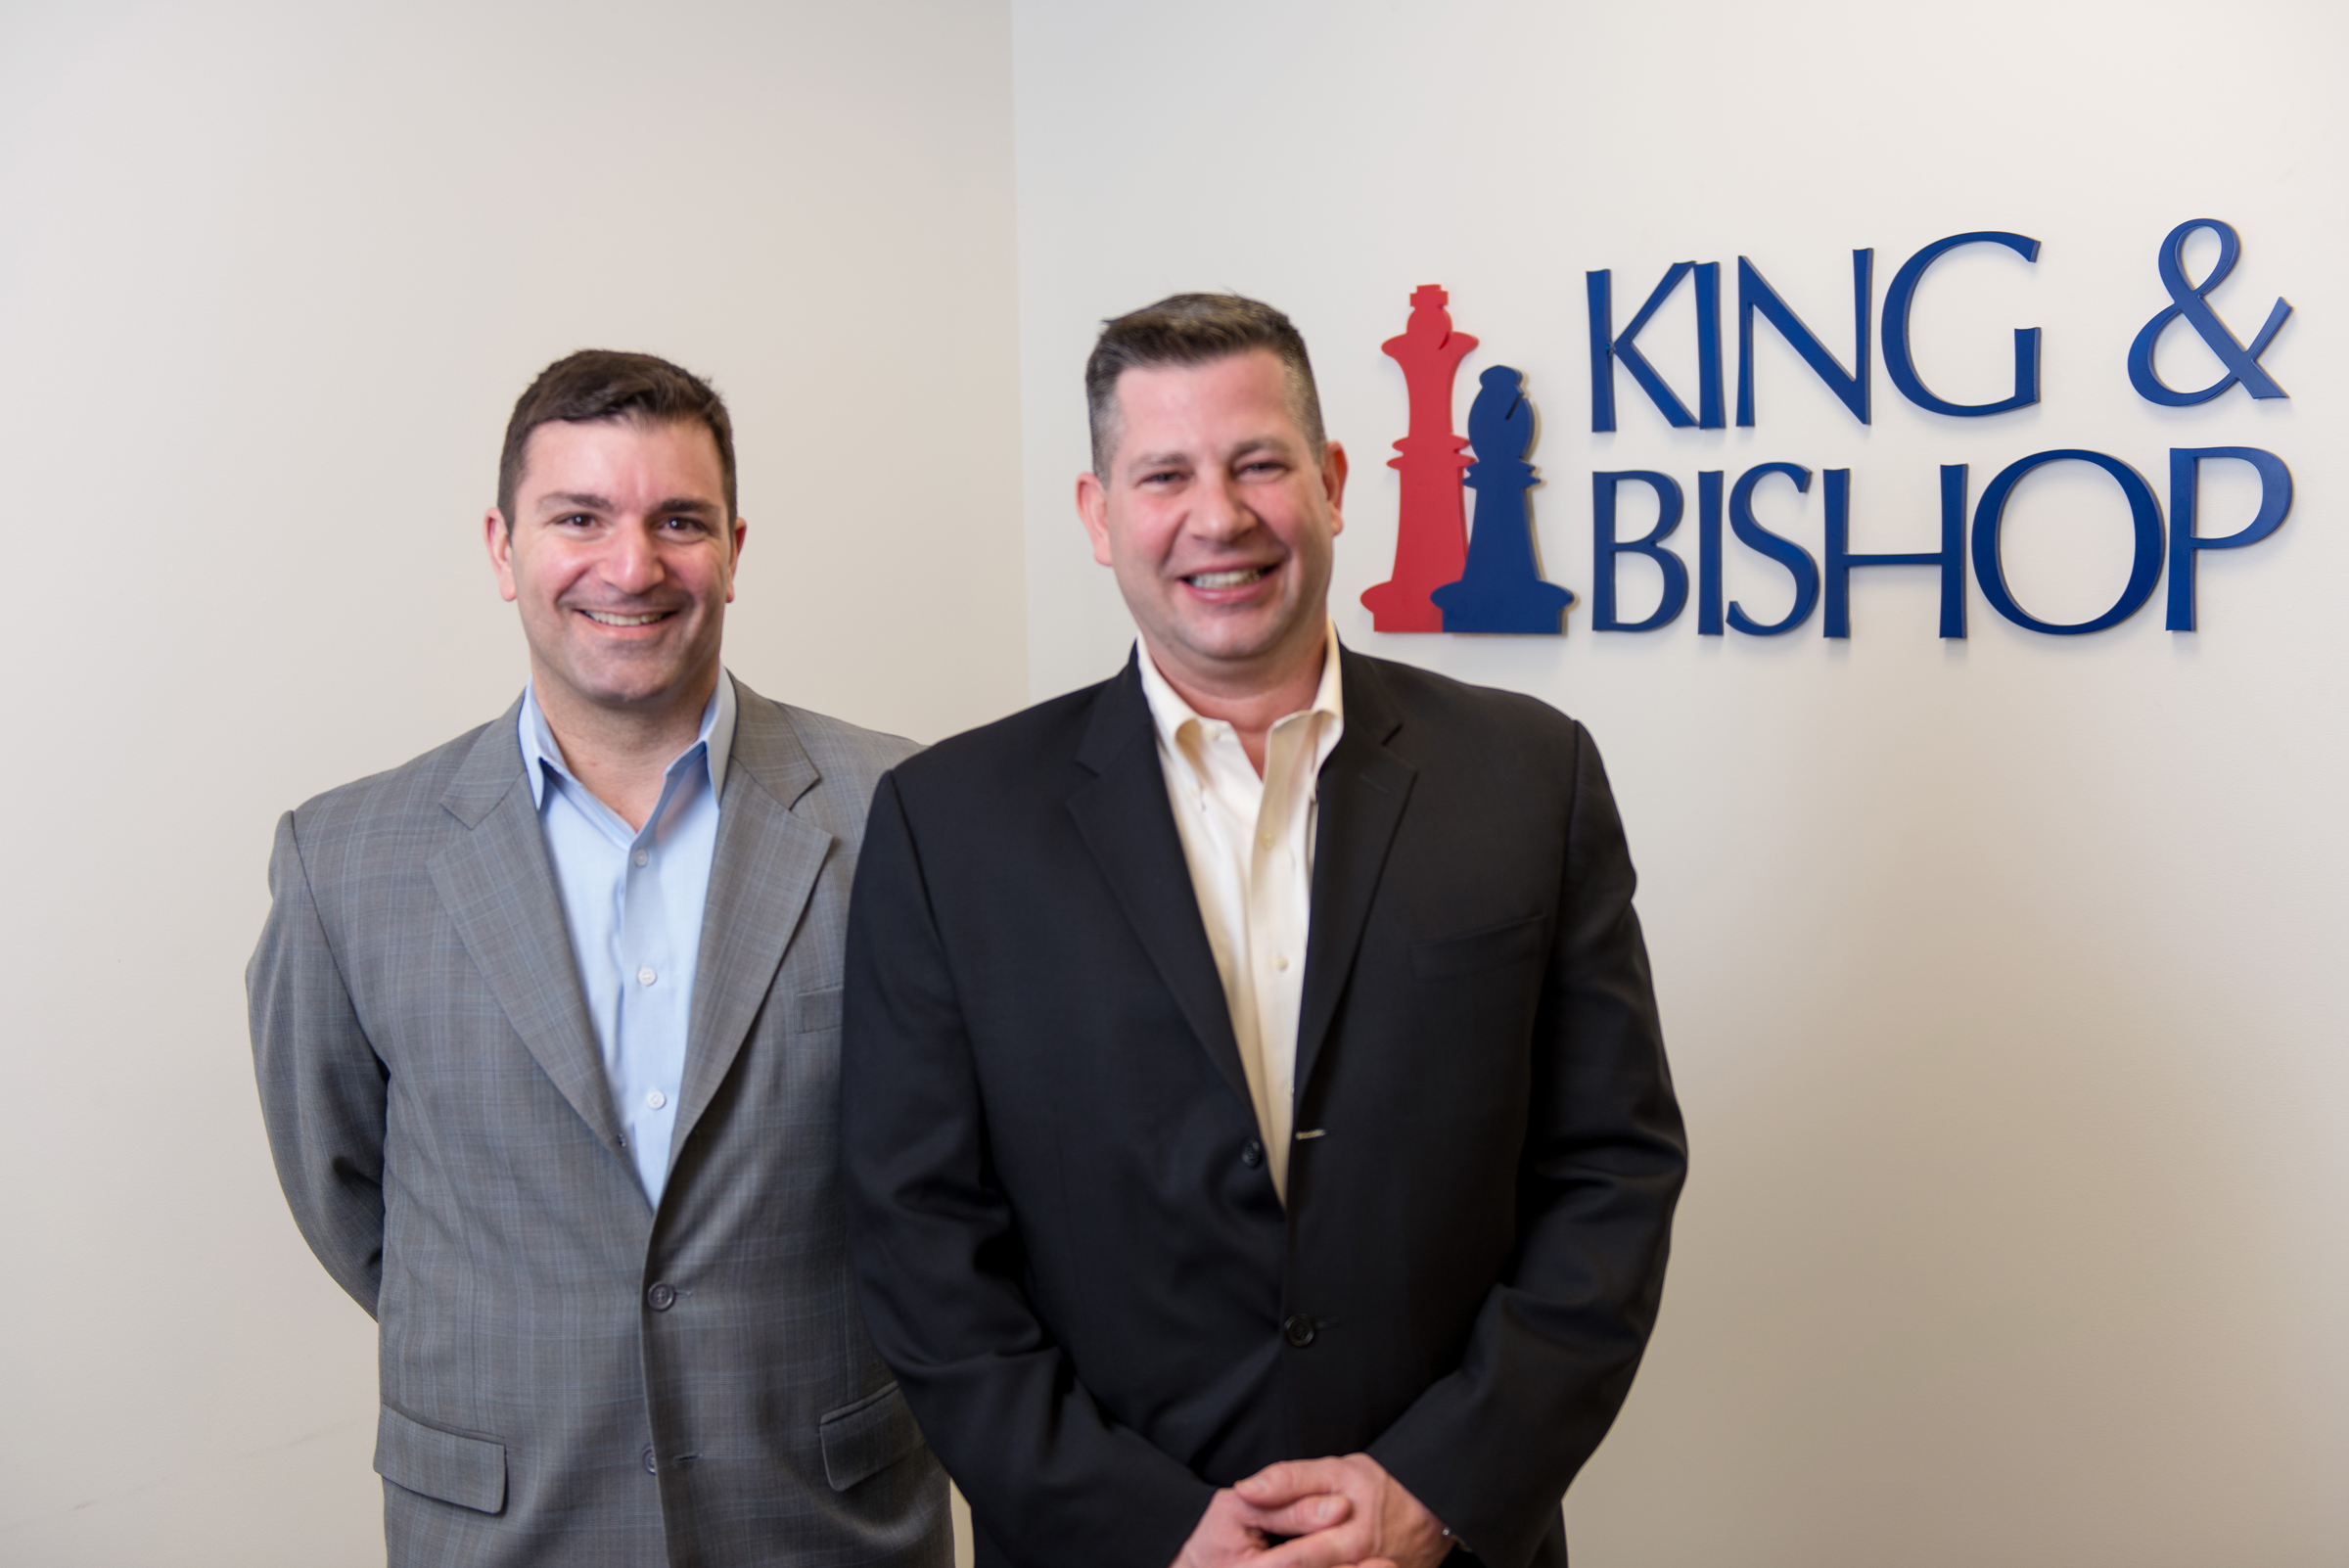 meet our recruiters in boston king bishop our recruiters staffing consultants and hr experts are here to you the best talent help you grow that talent and create solutions to your